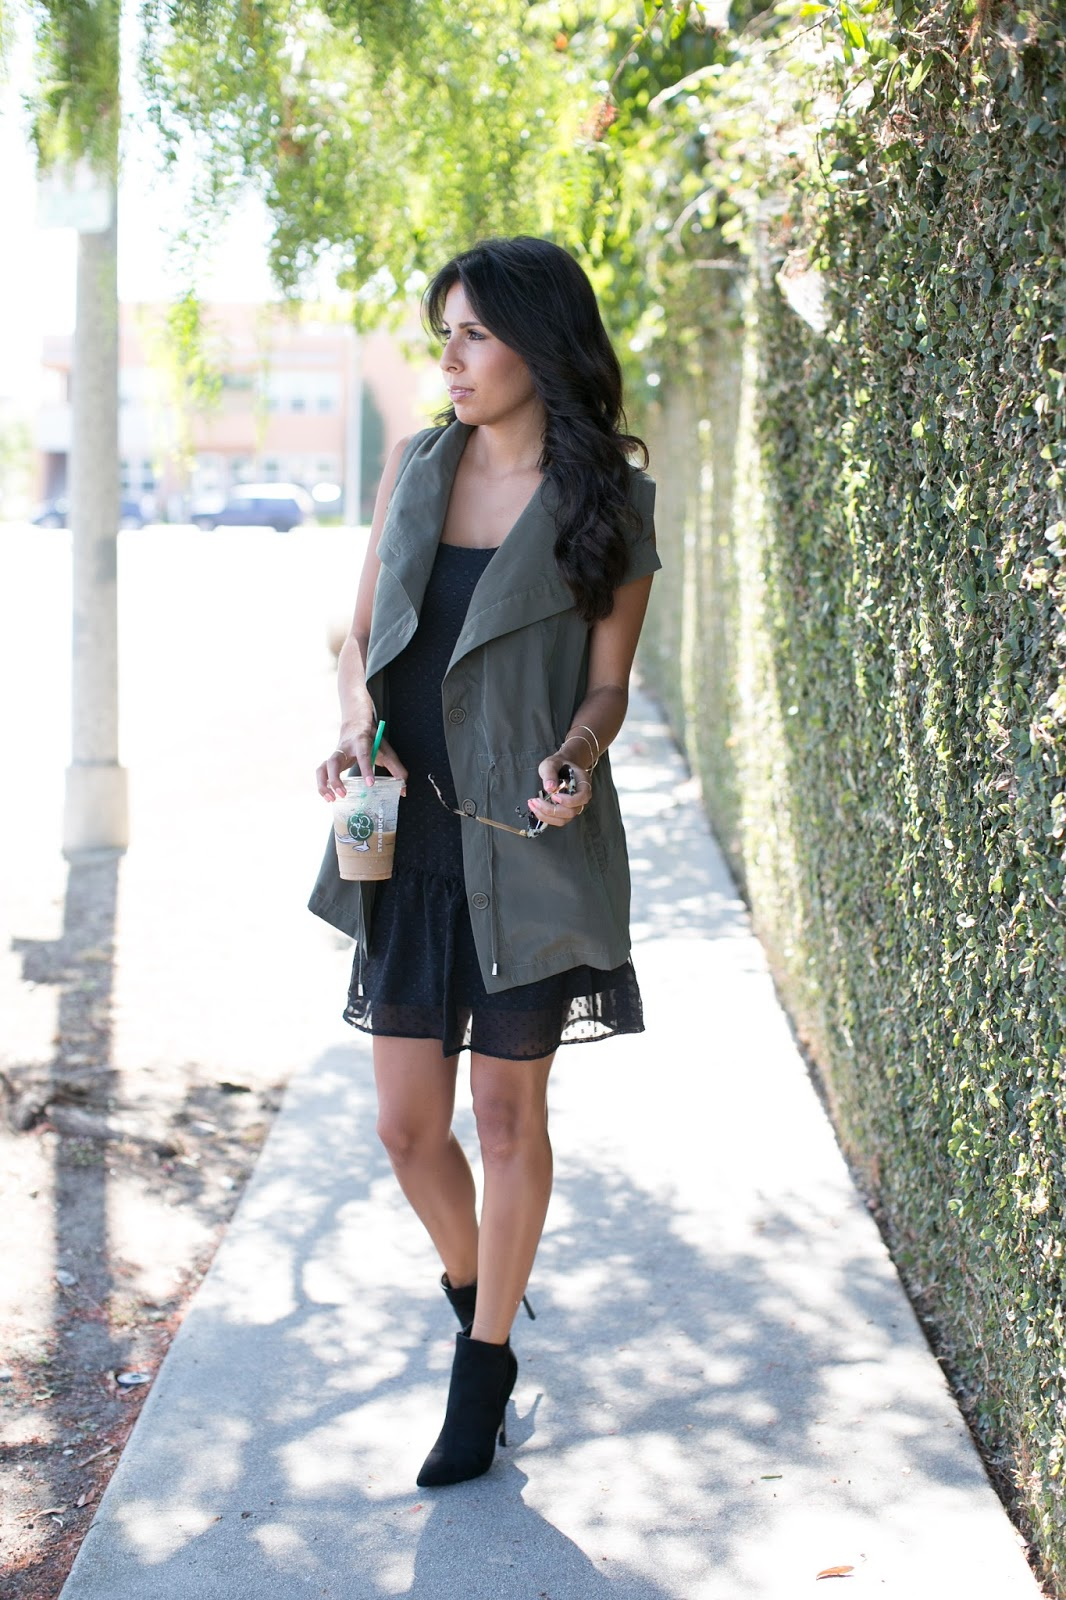 olive vest, justfab boots, how to shop at justfab, pursuit of shoes